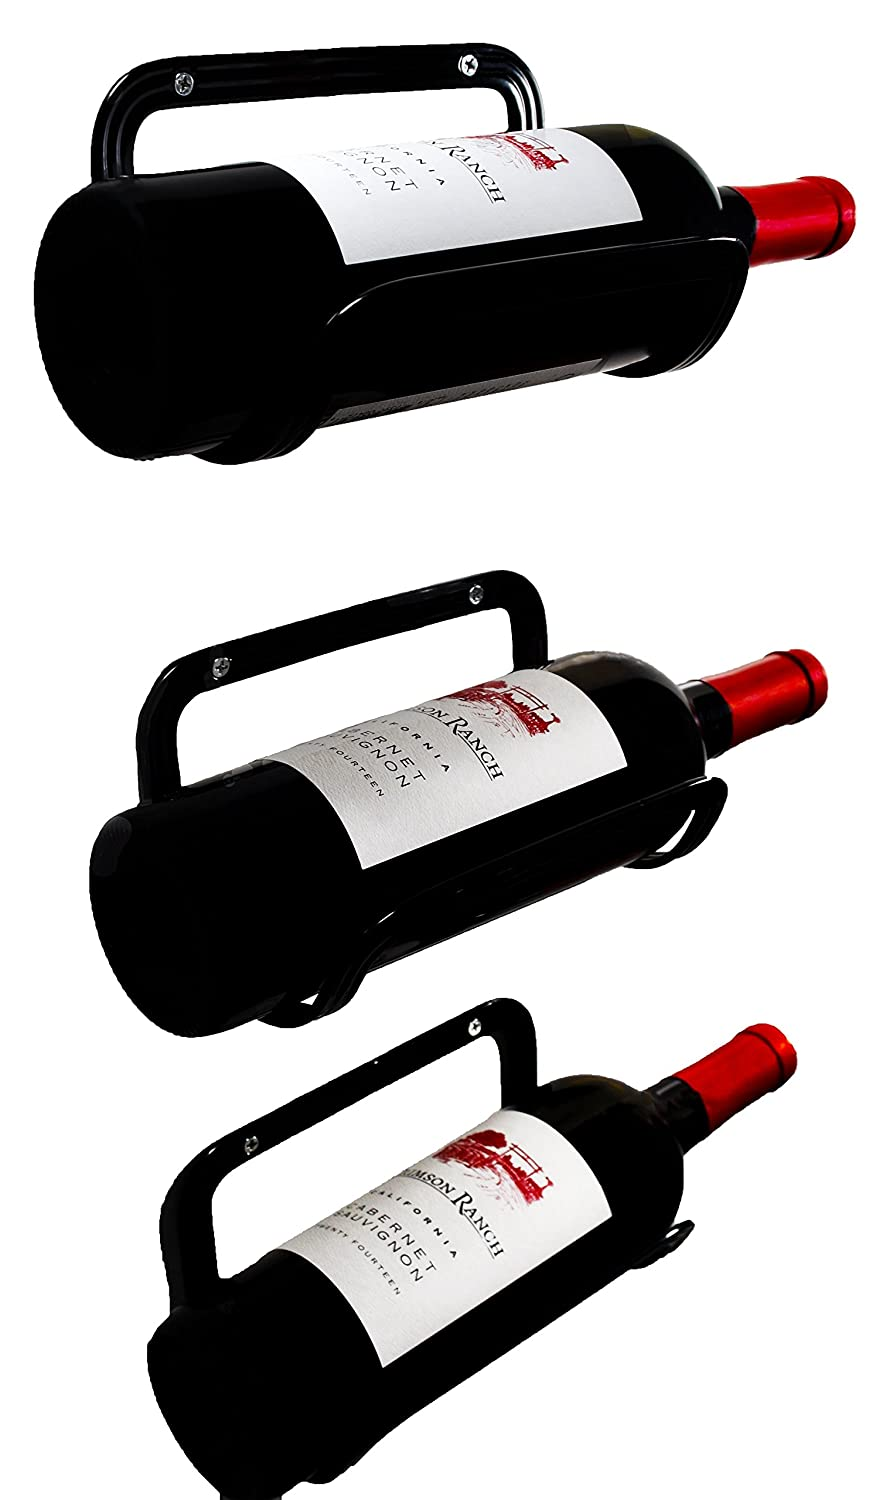 Mango Steam Wall Mounted Wine Rack, Set of 3, Black (Mounting Hardware Included)